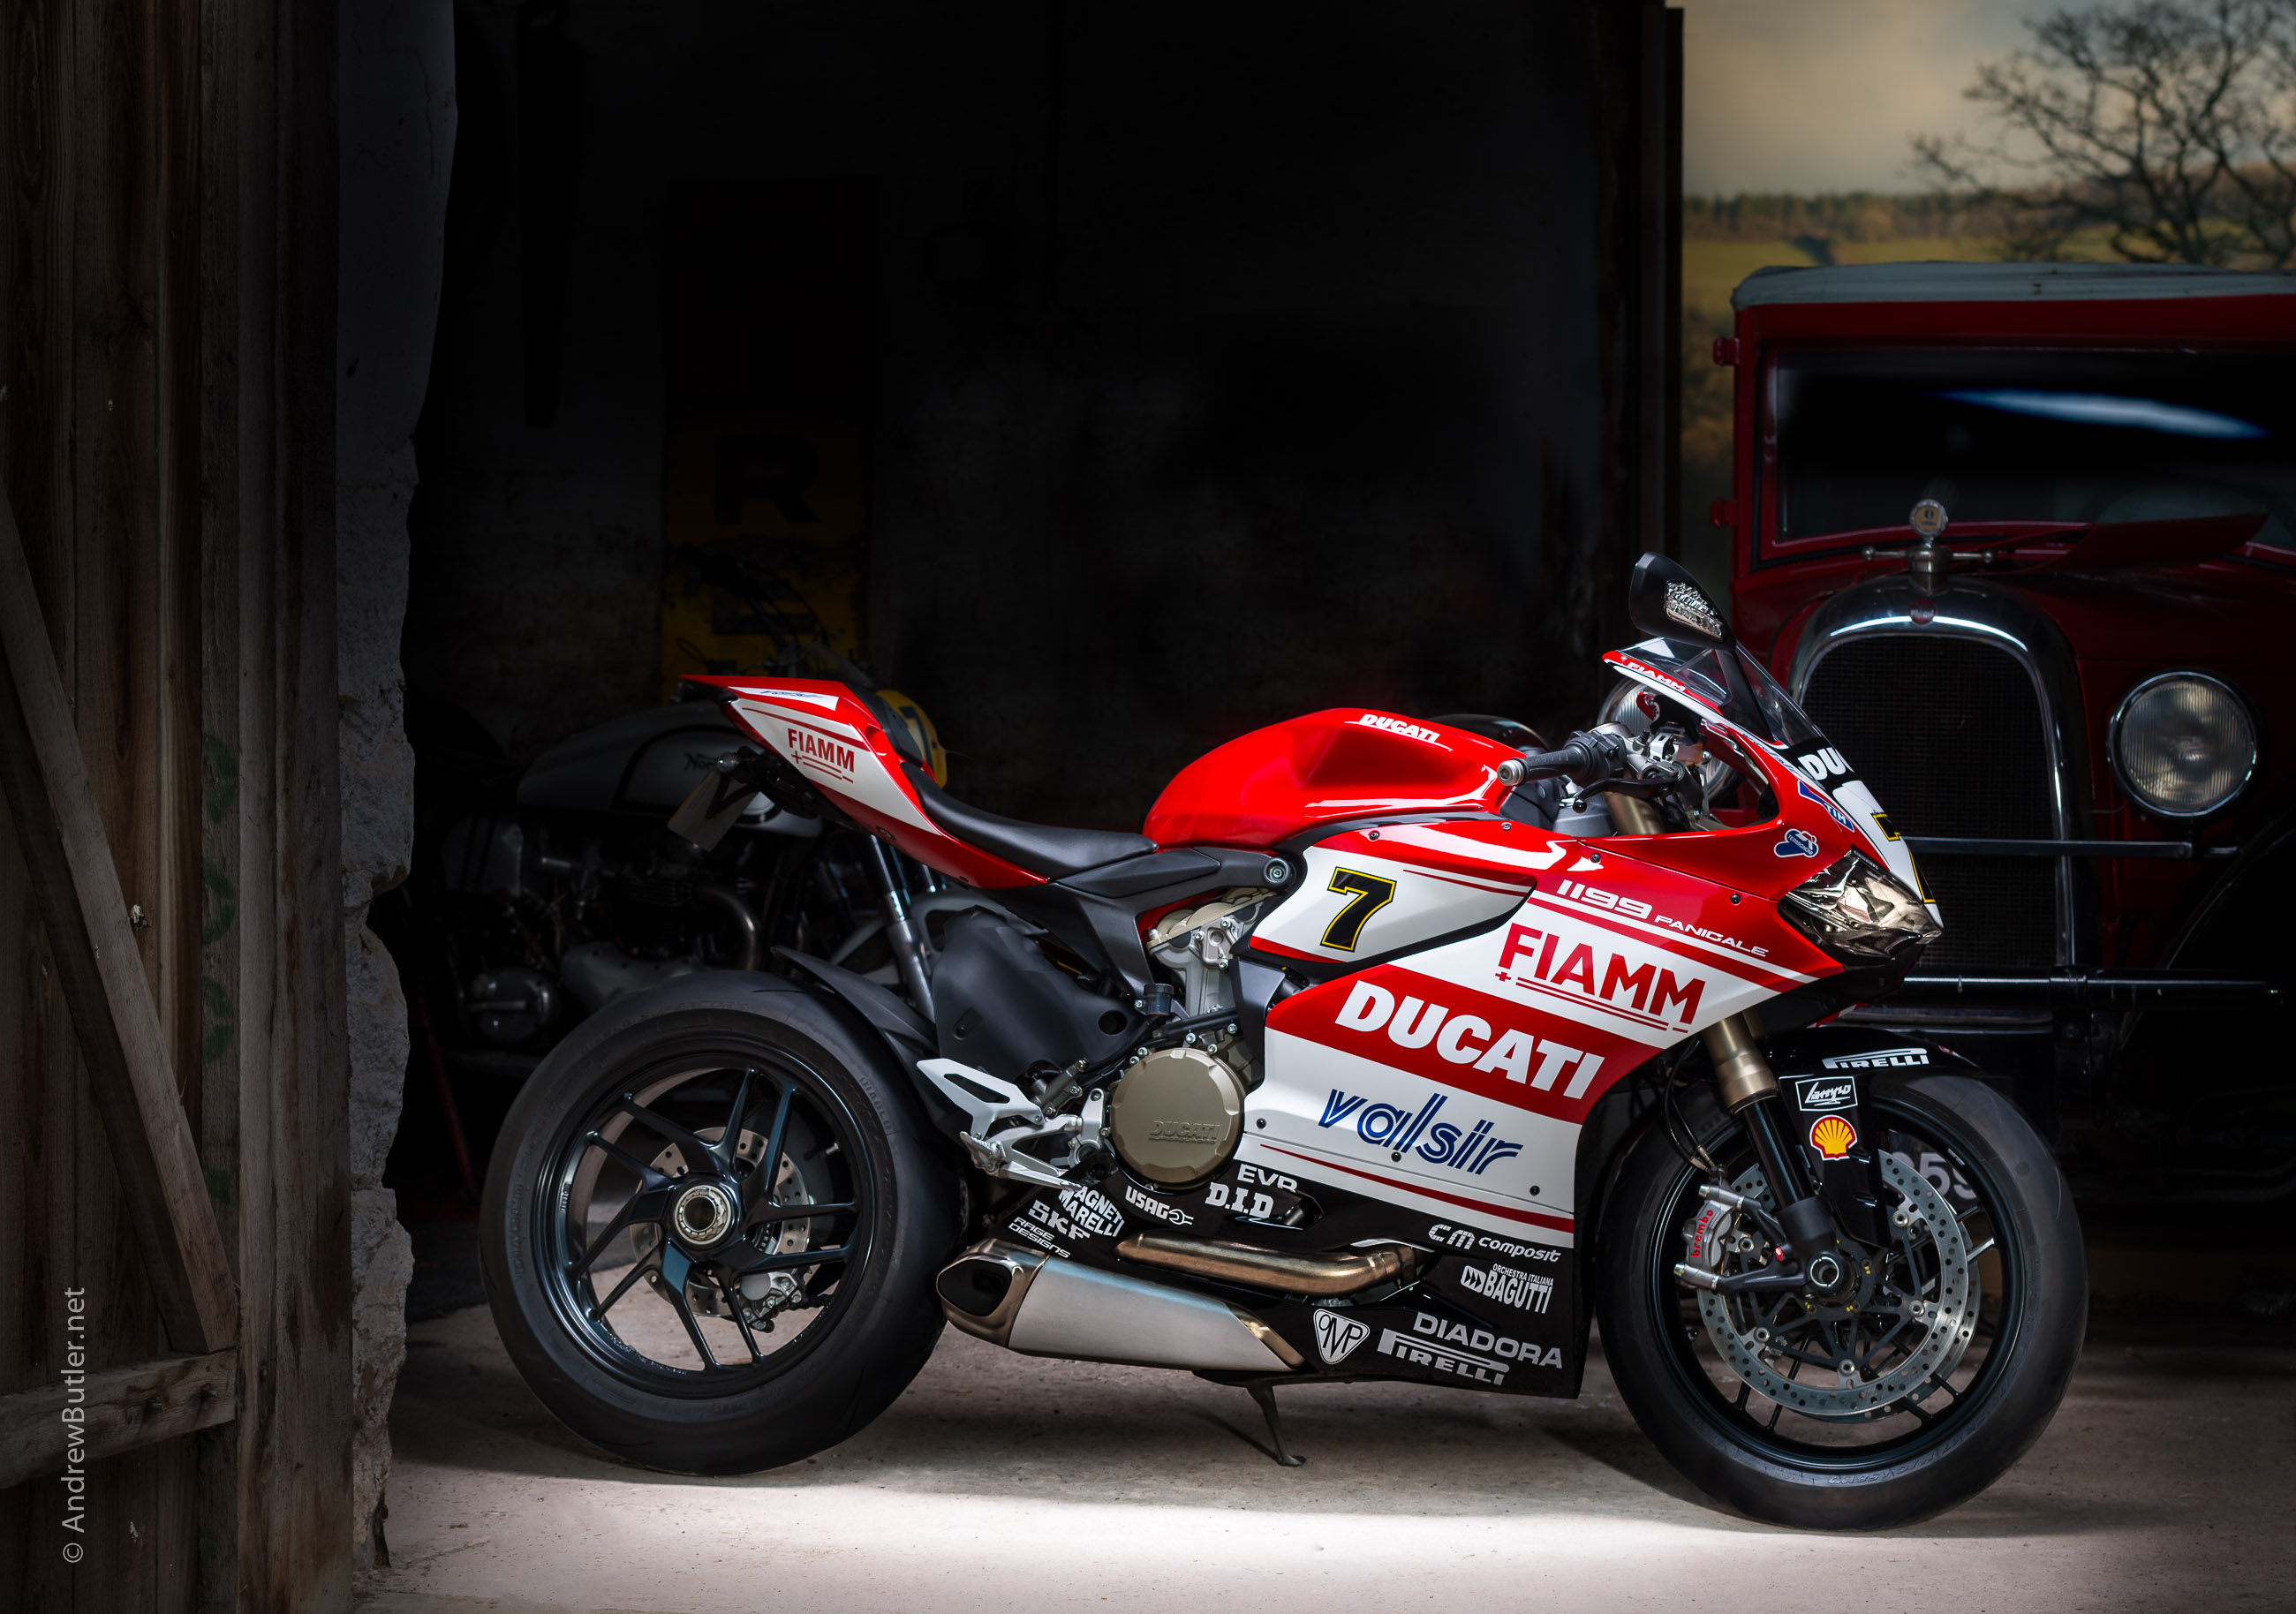 Ducati 1199 Panigale photographed by Andrew Butler by motorbike photographer Andrew Butler